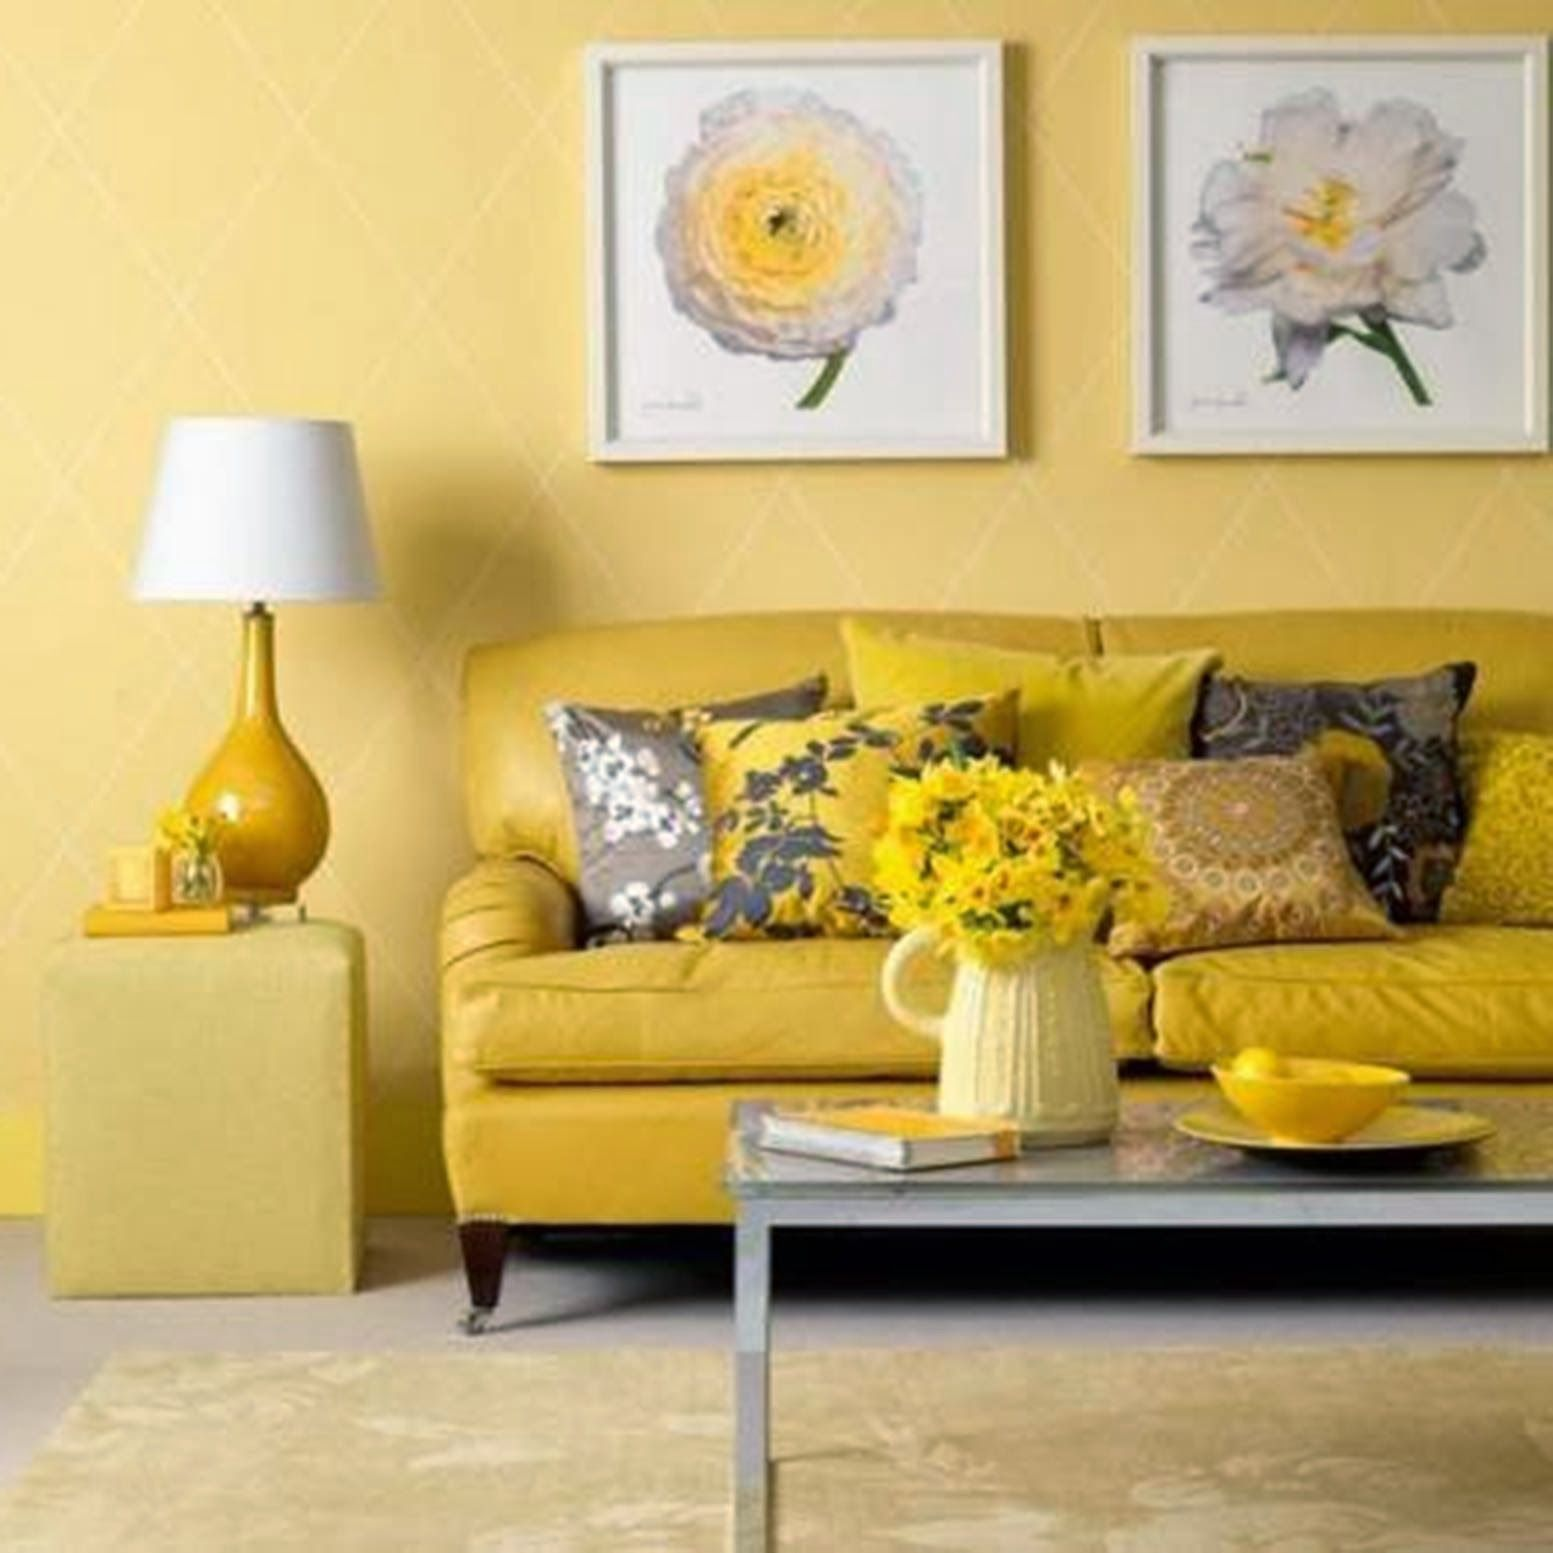 Lovable Rose Artwork Portray Over Yellow Faux Leather Two Seater ...